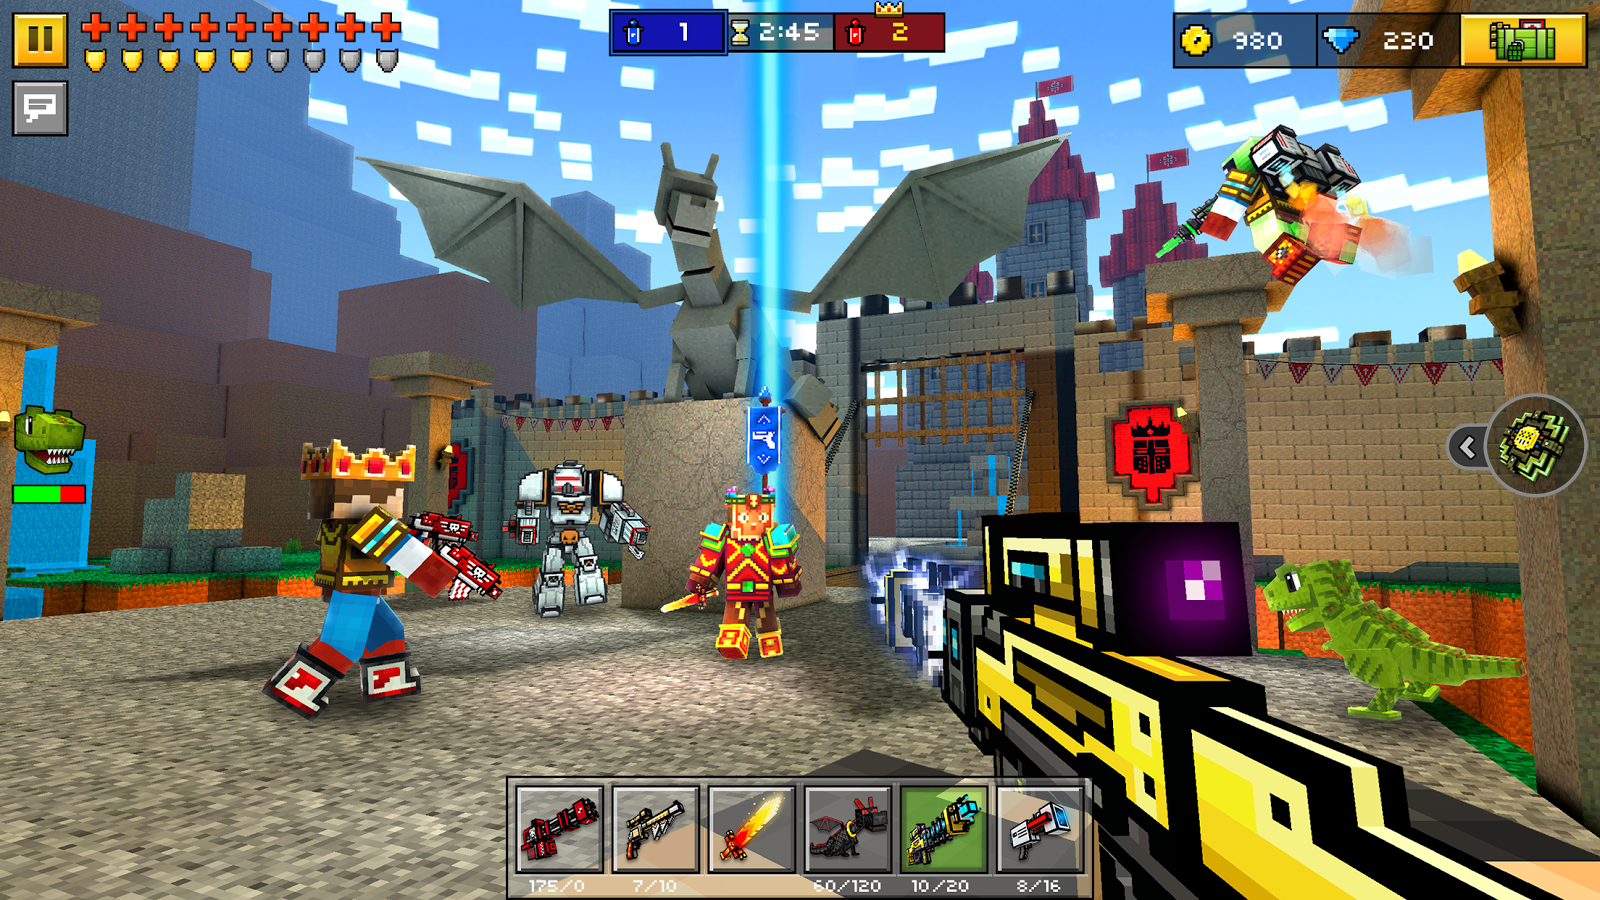 Pixel Gun 3D (Pocket Edition) Screenshot 1